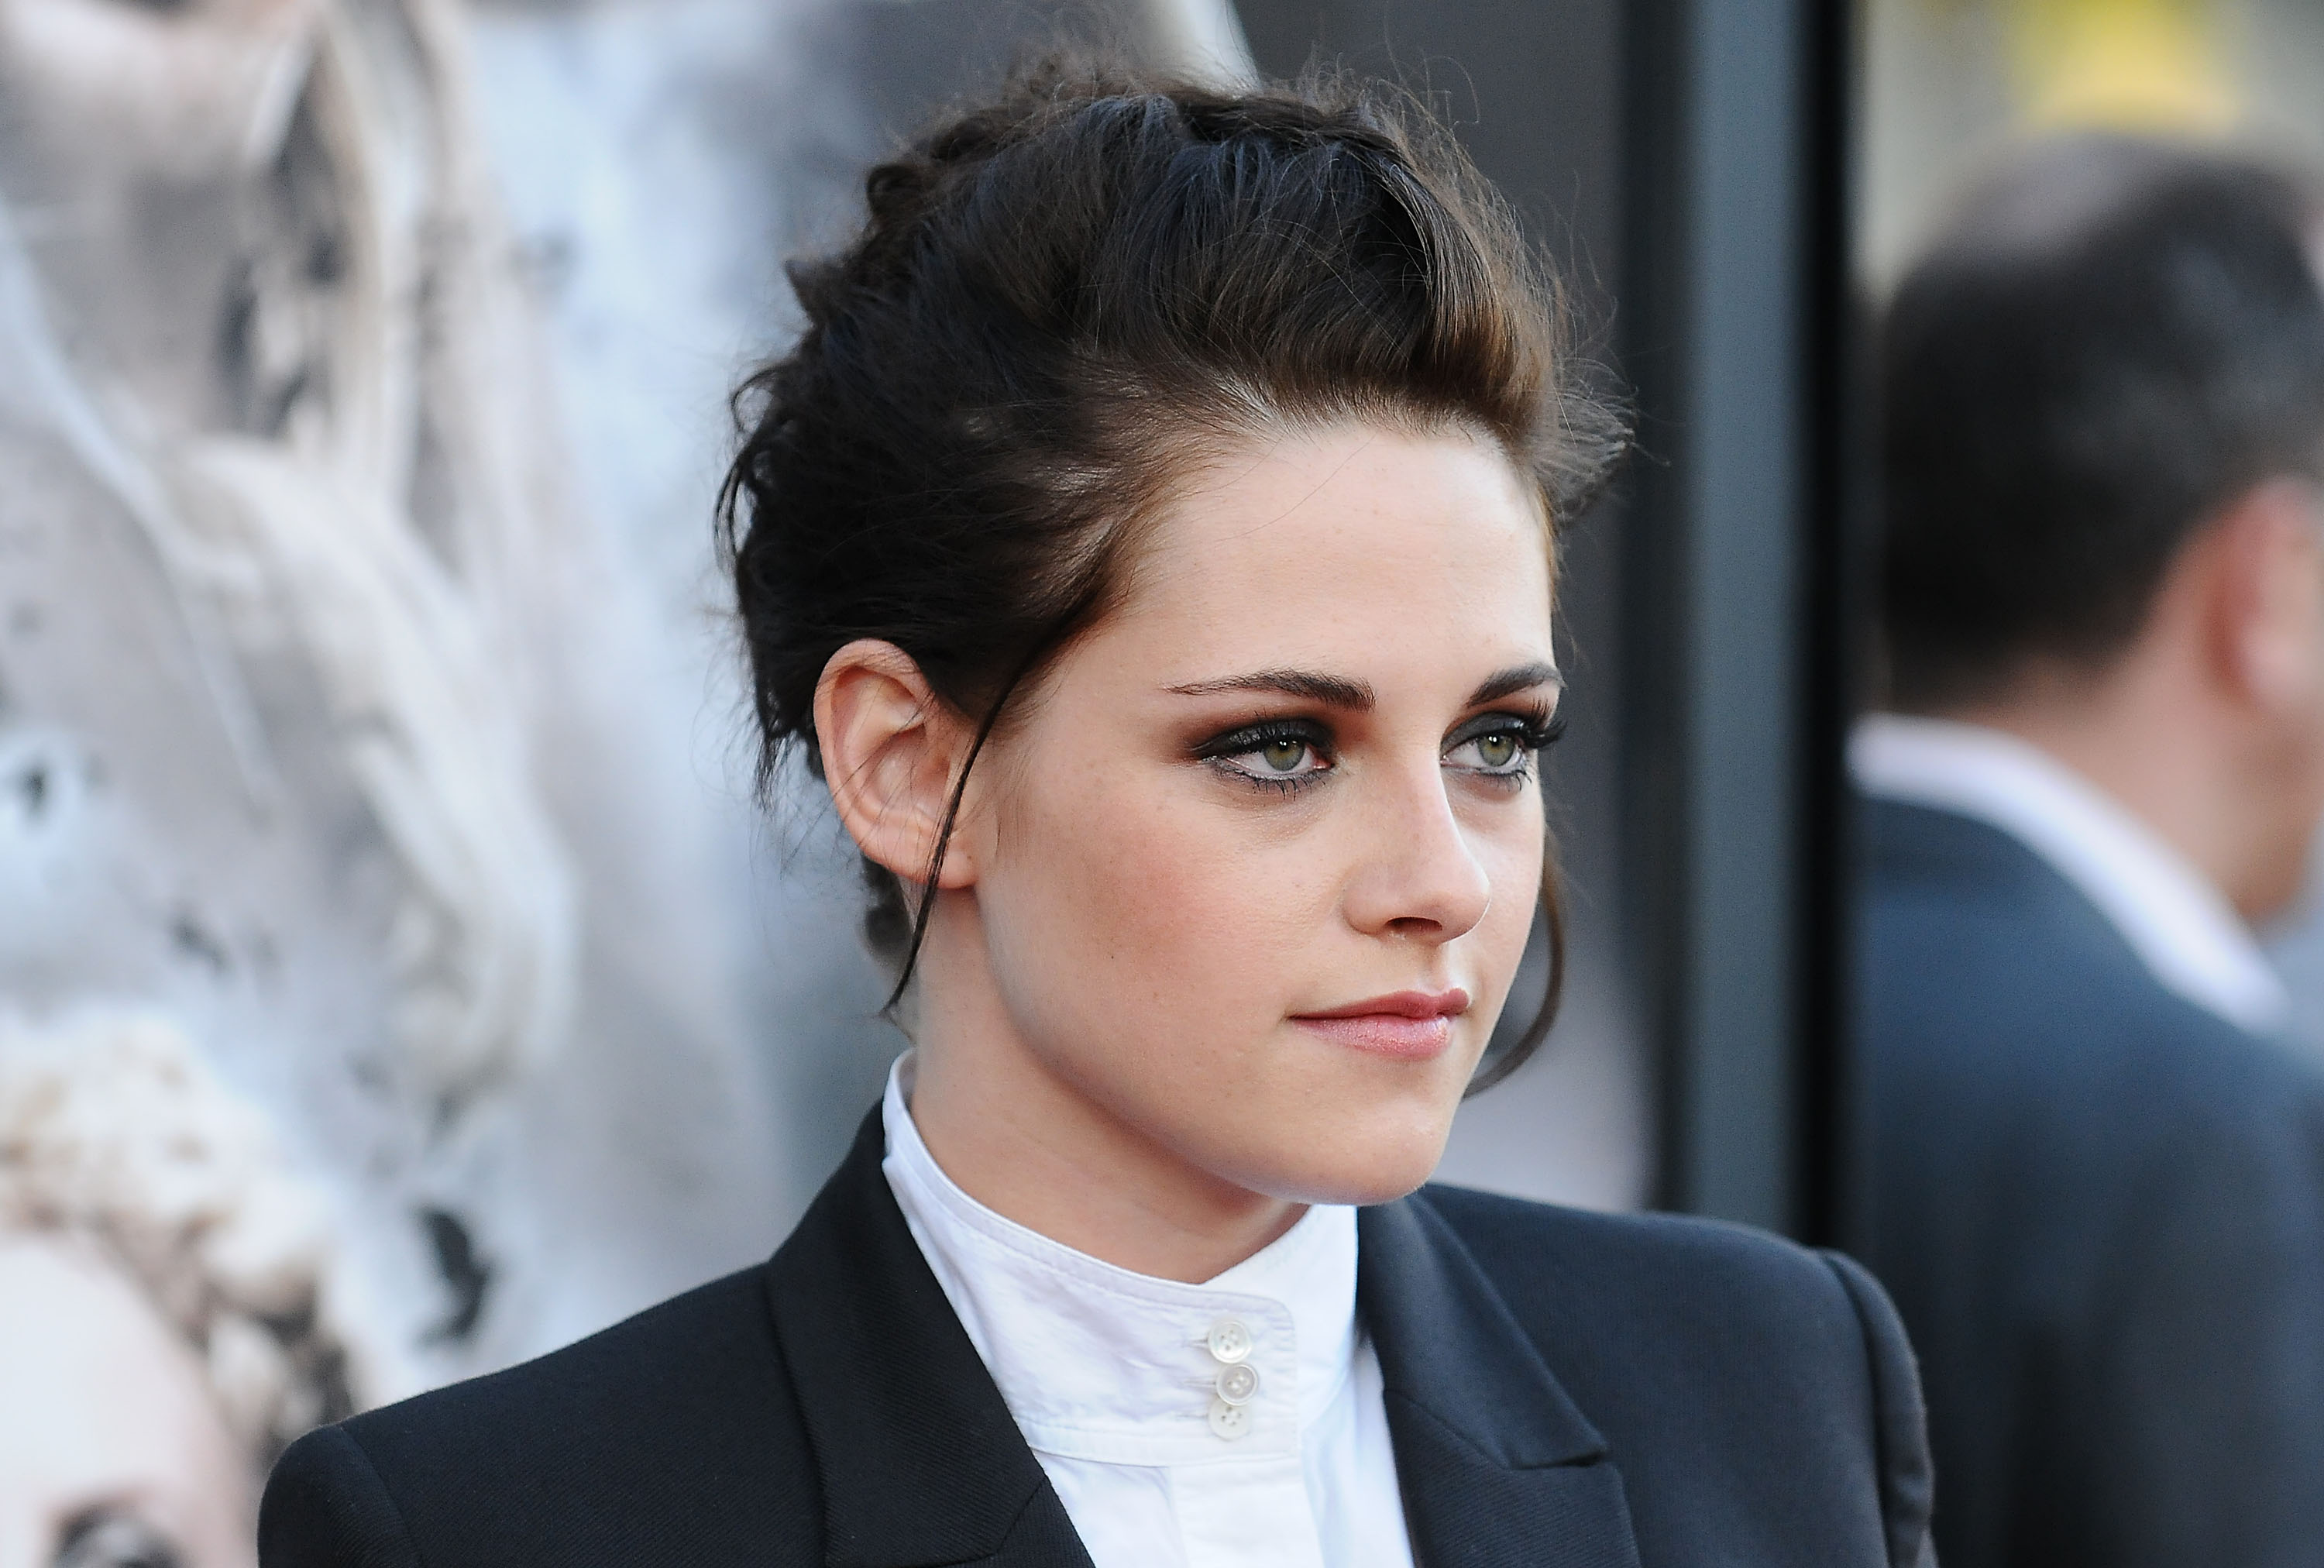 Kristen Stewart Hair up Suit